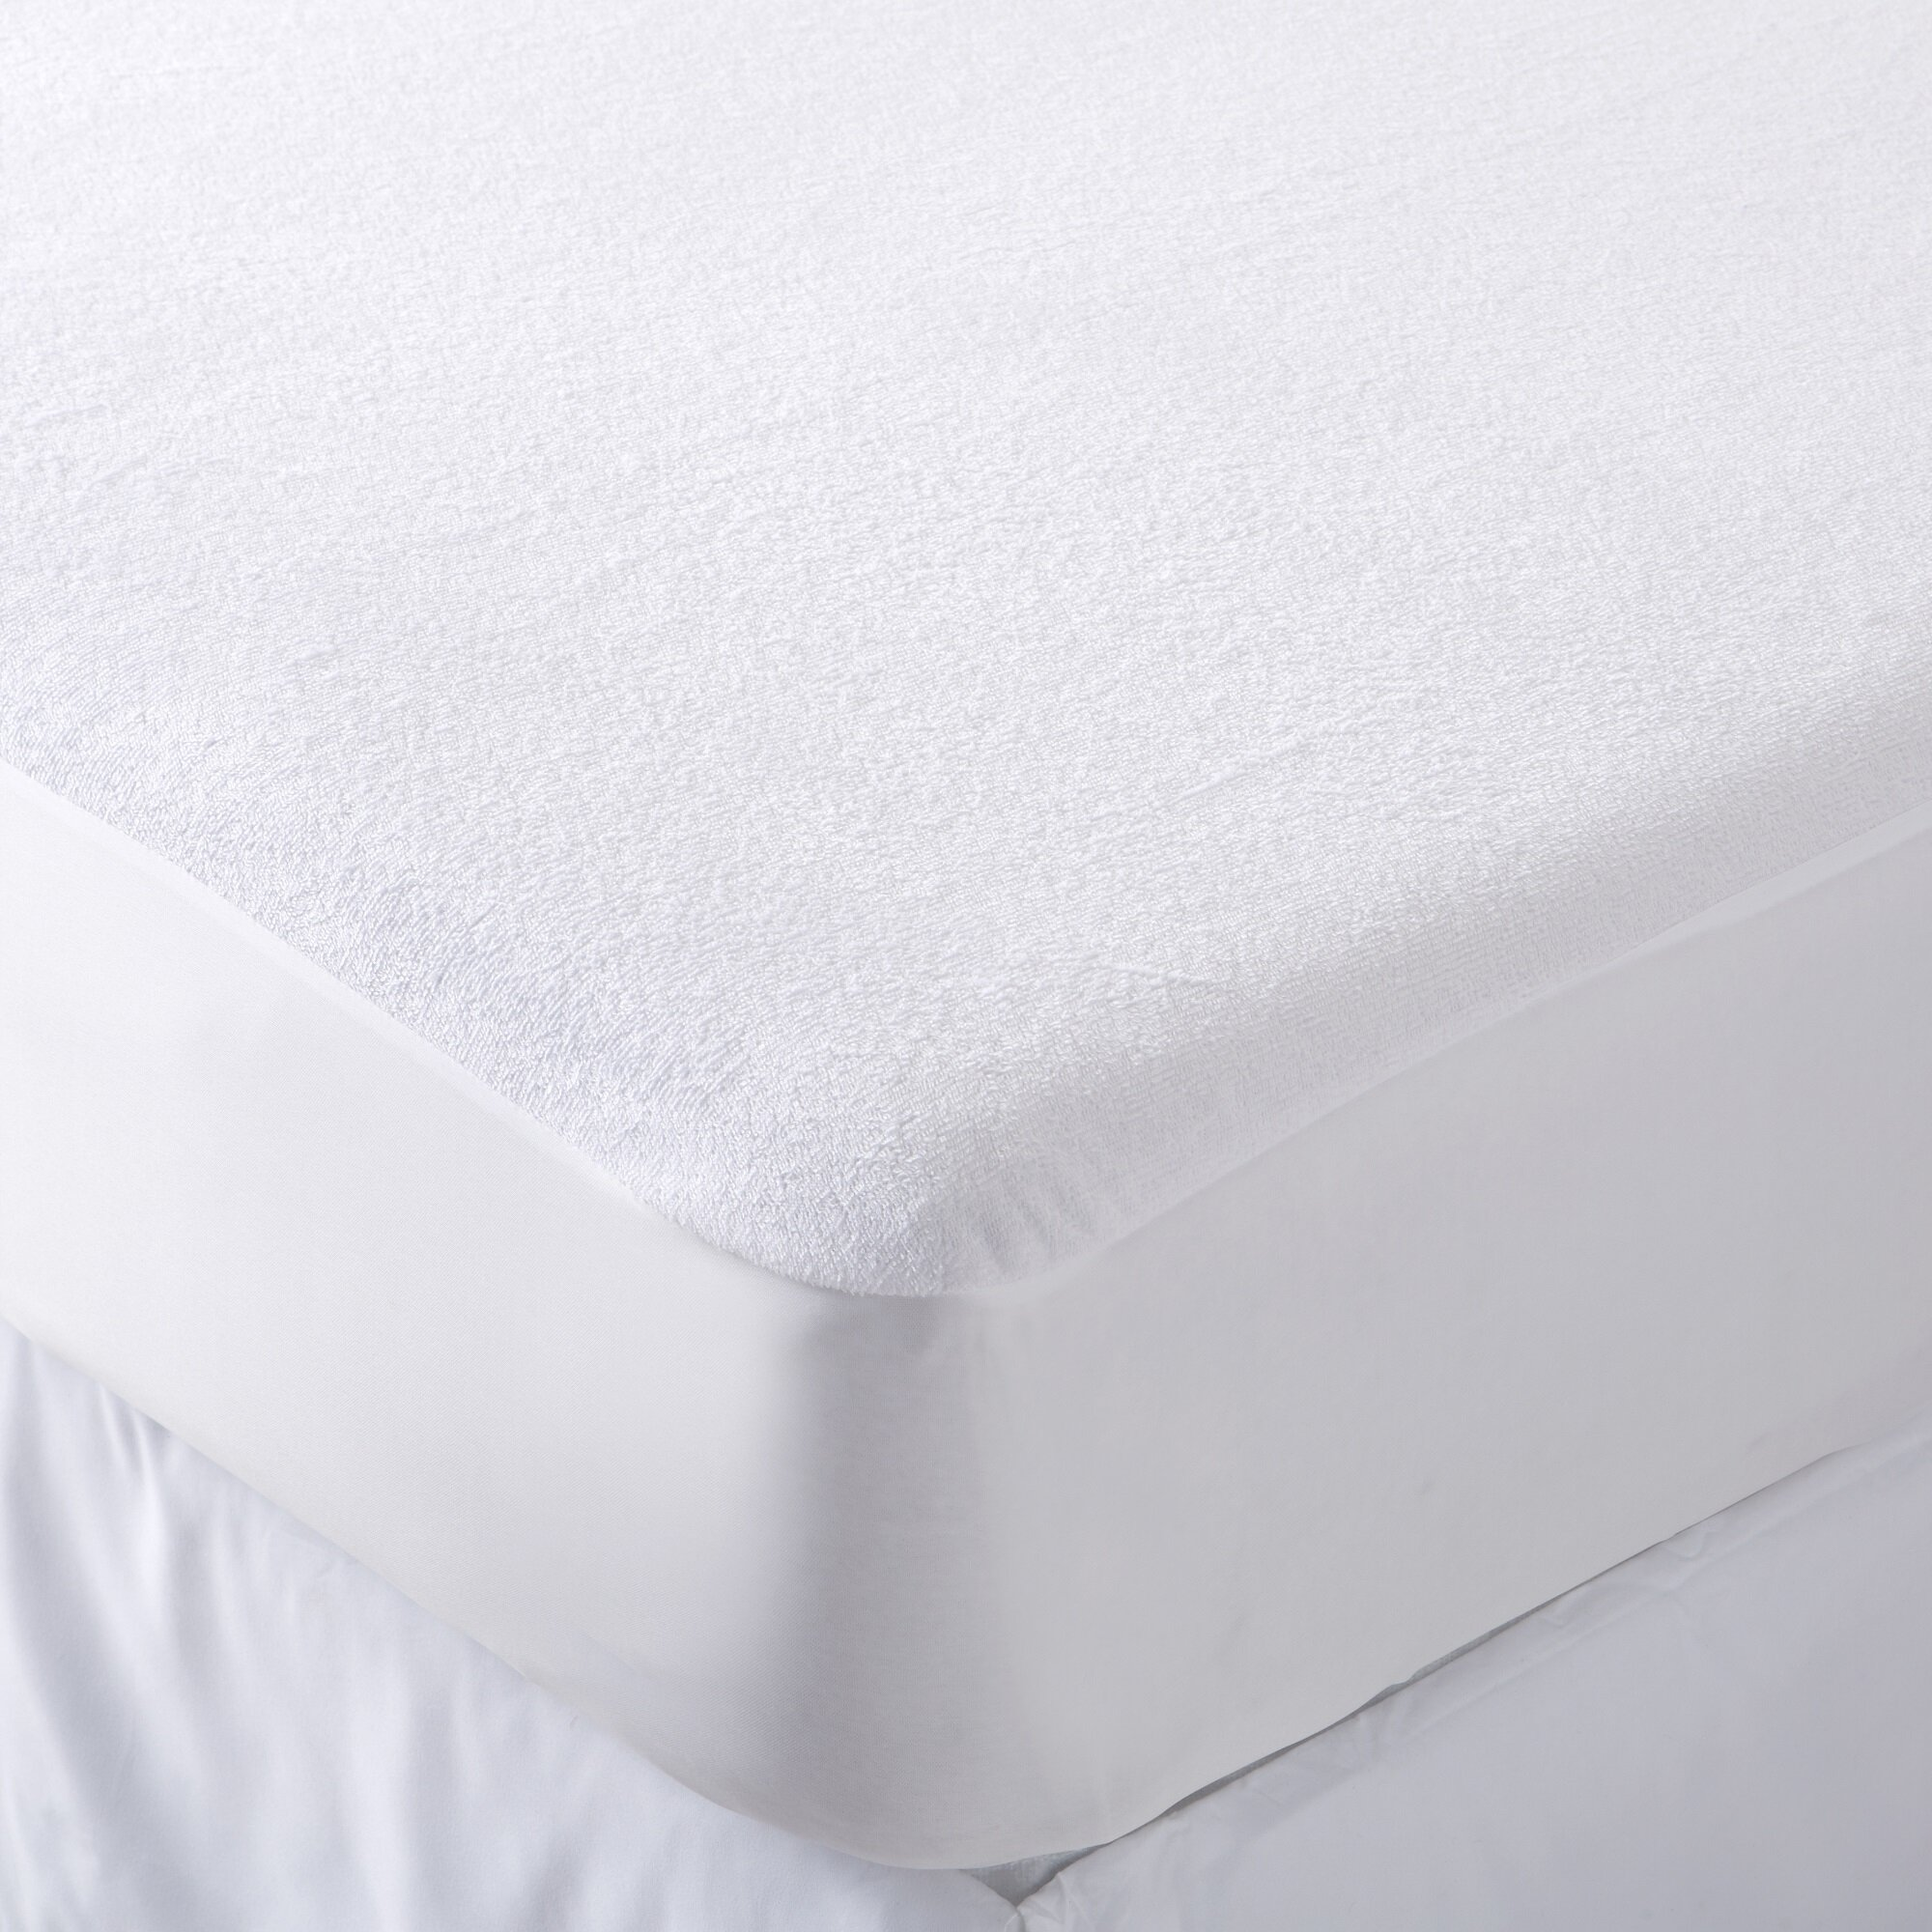 Bunk Bed Waterproof Washable Mattress Protector Terry Wet Sheet Mattress Cover